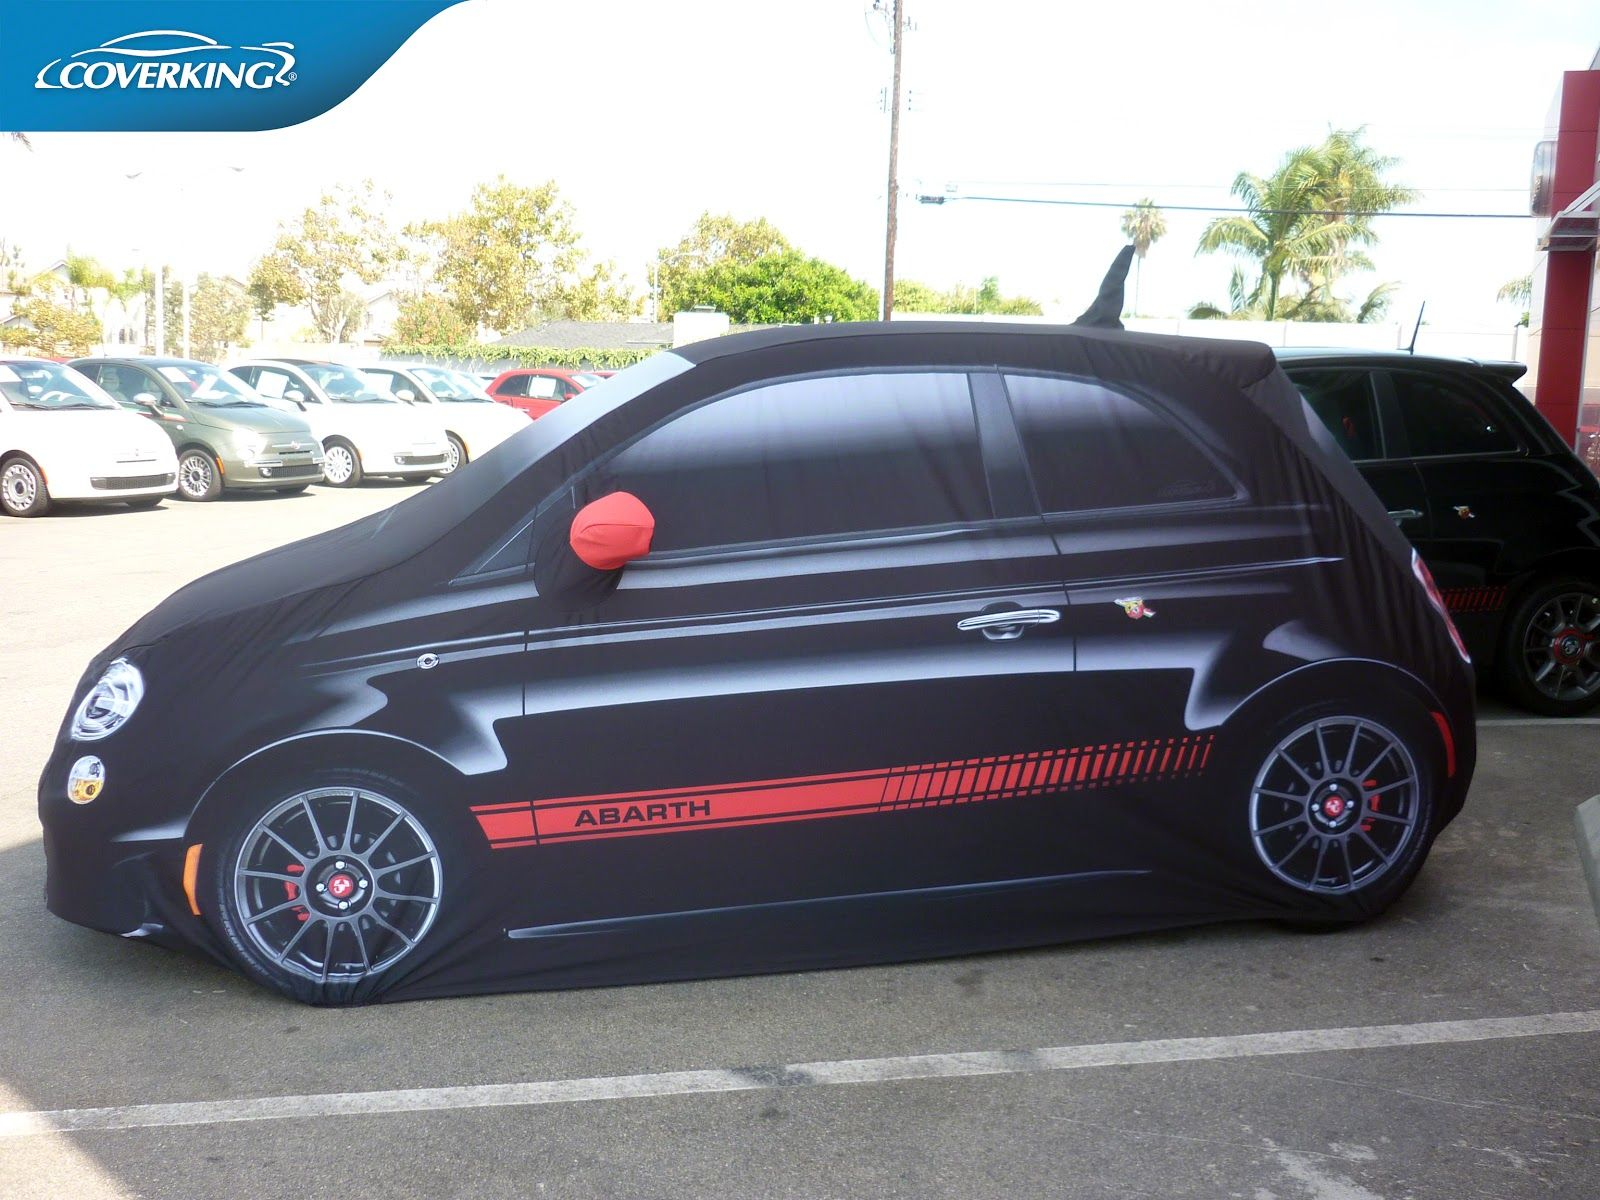 New Graphic Printed Custom Fit Indoor Car Cover for Fiat 500 Abarth